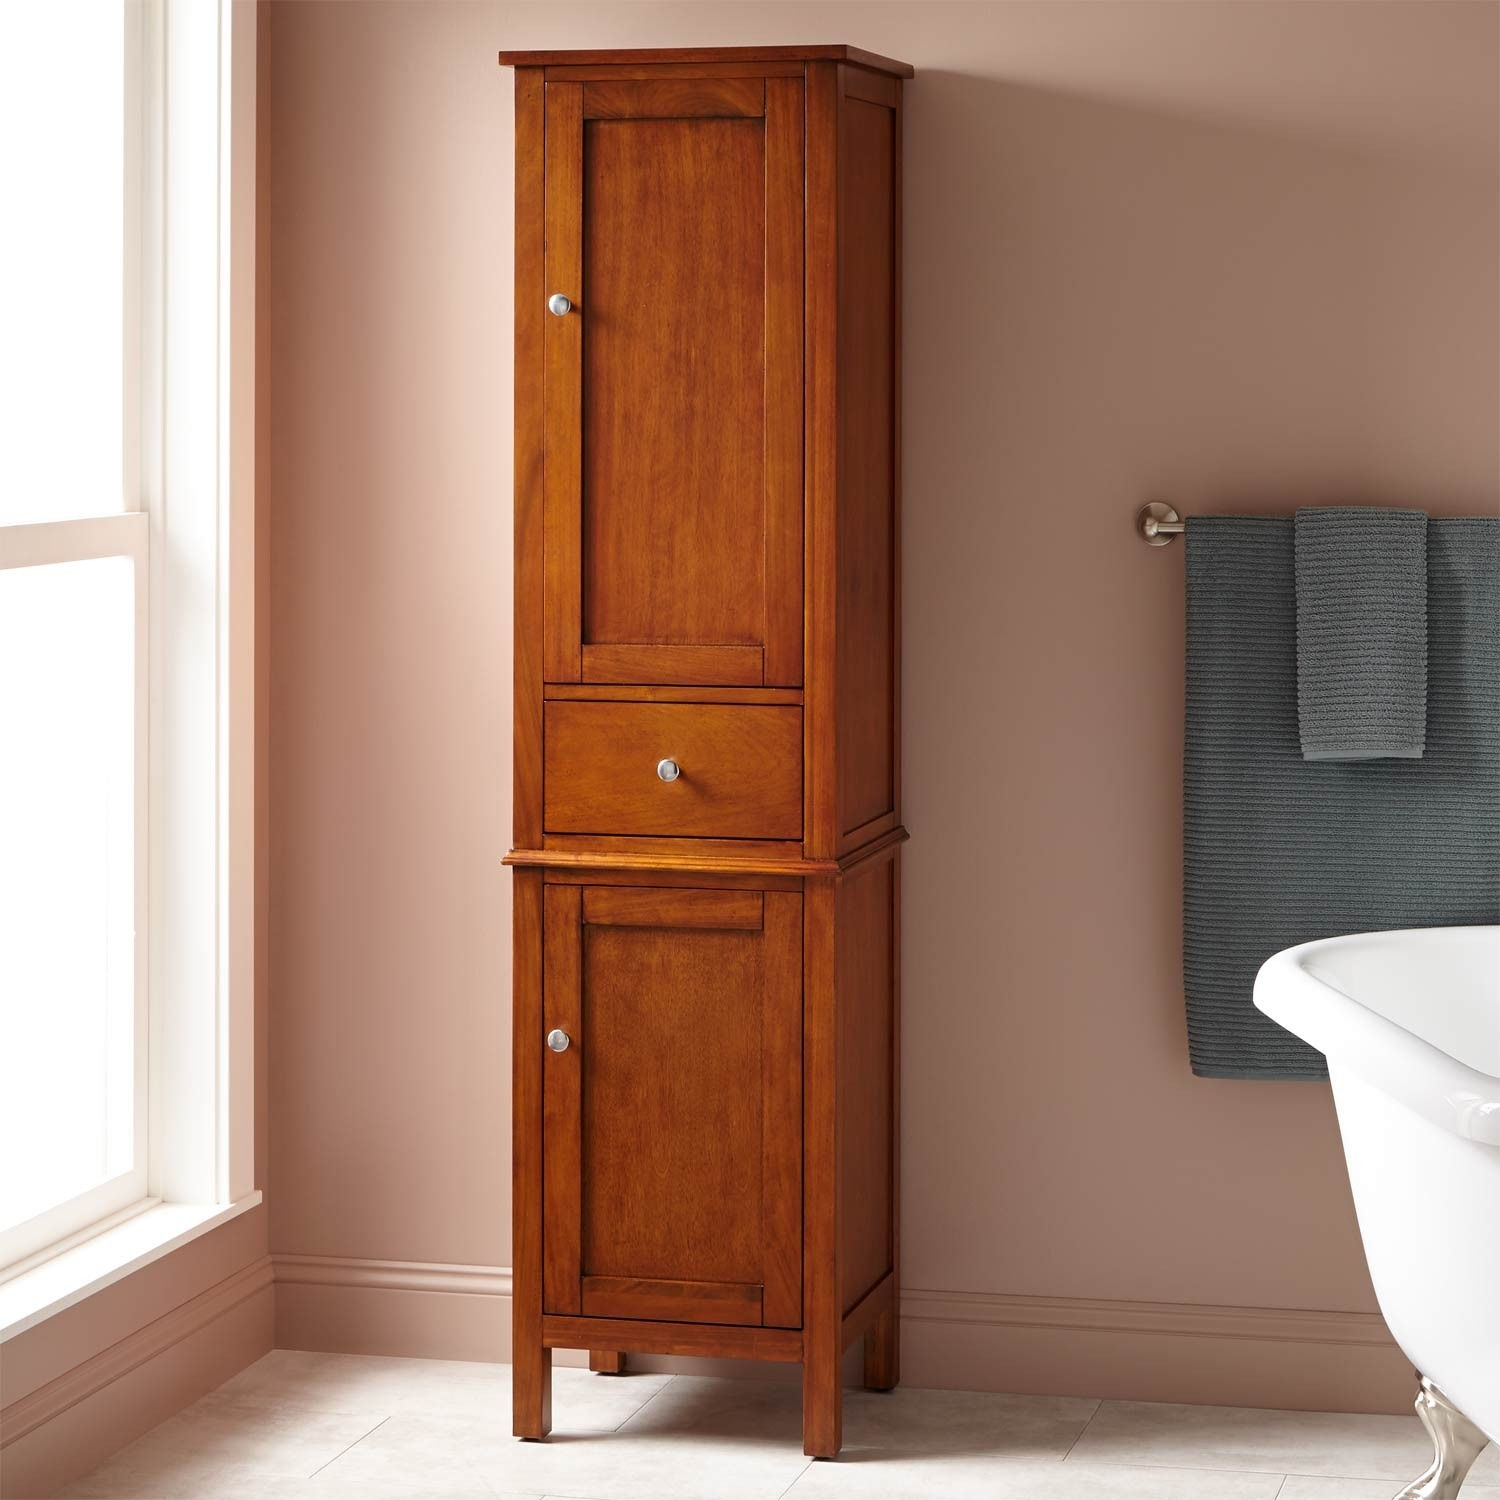 Recessed Bathroom Linen Cabinets